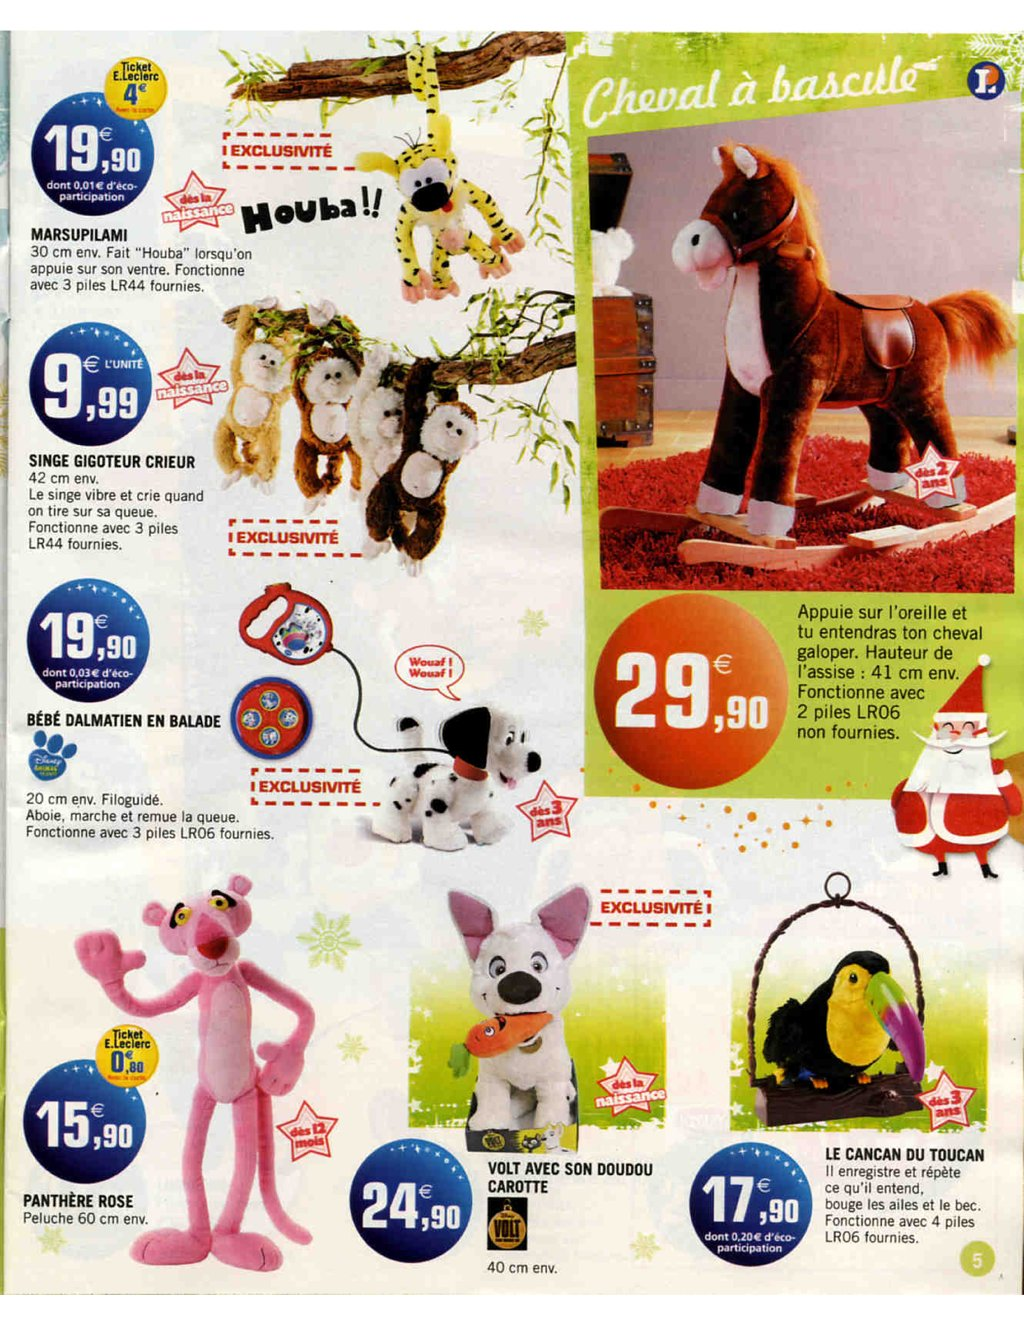 Catalogue E-Leclerc Noël 2009 | Catalogue